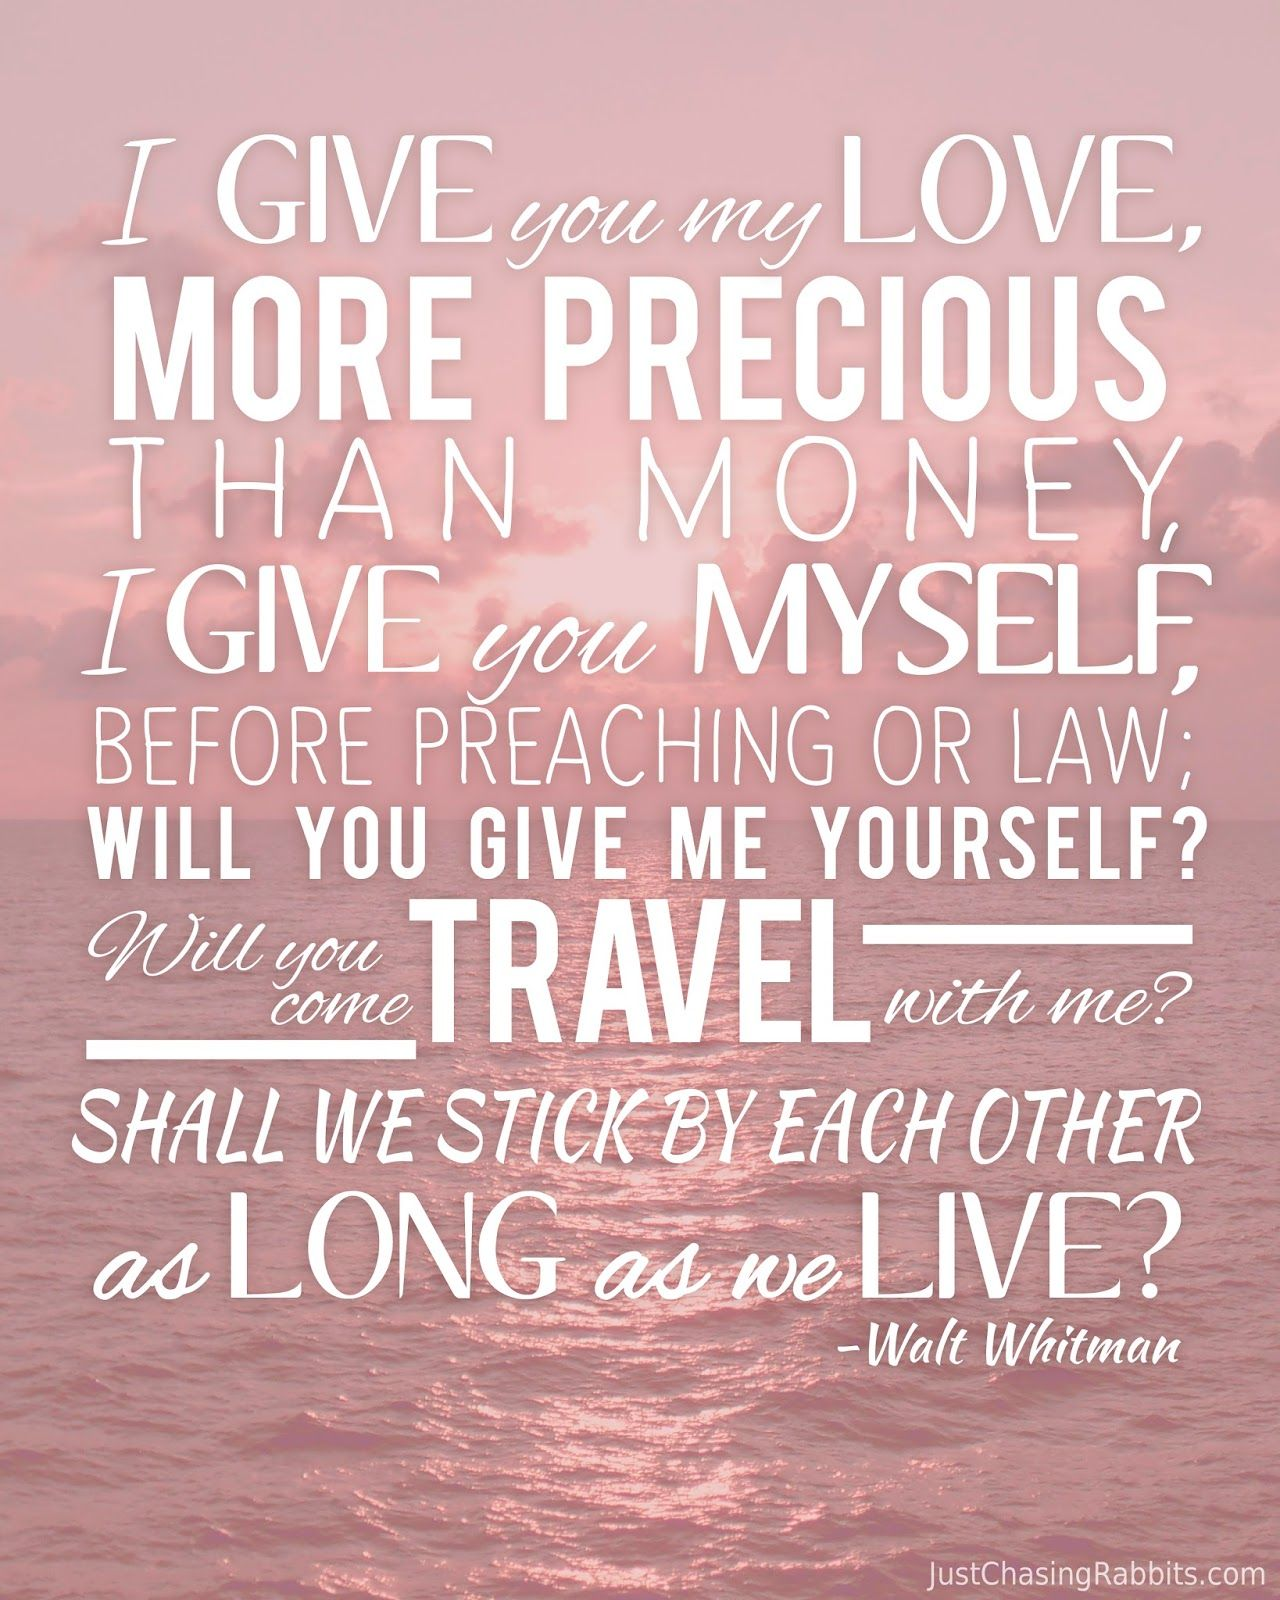 Walt Whitman Quotes Love: Love And Travel Walt Whitman Quote Printable Wall Art For